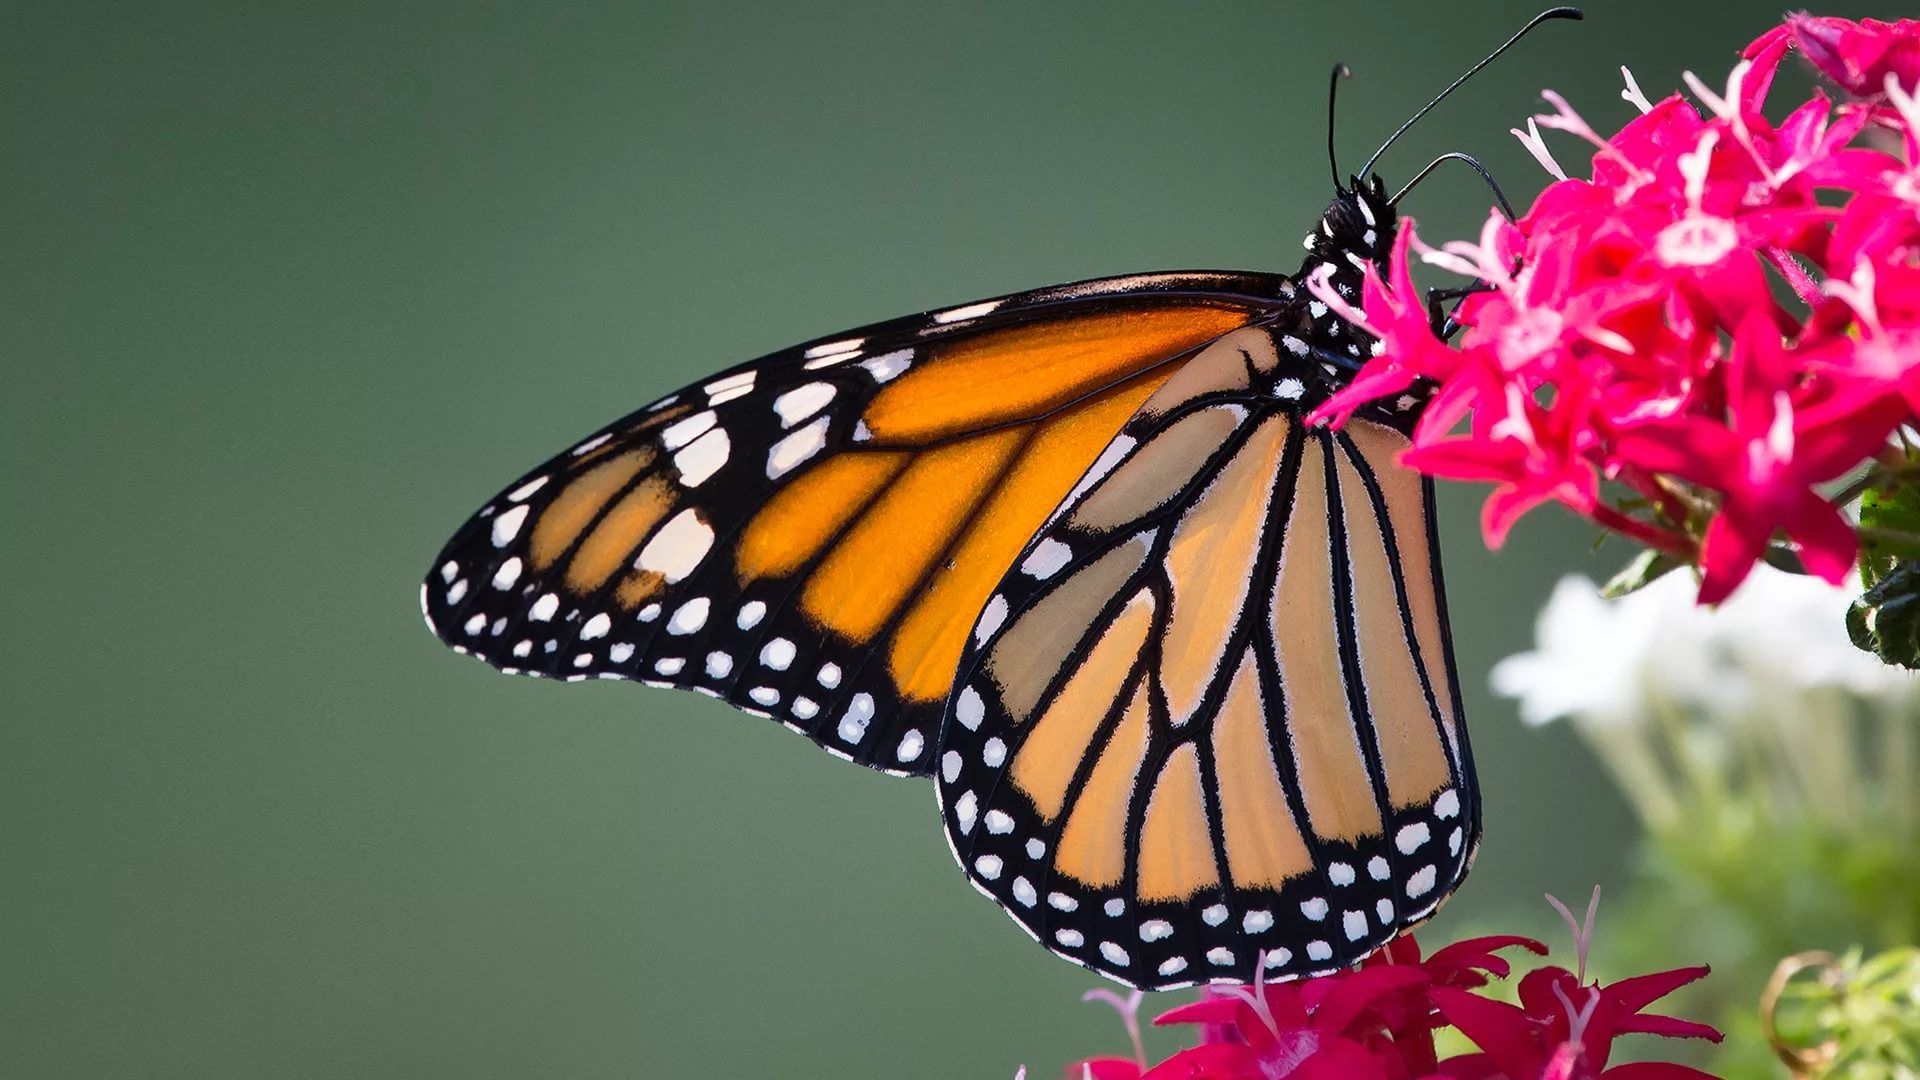 Nice Butterfly wallpaper picture hd